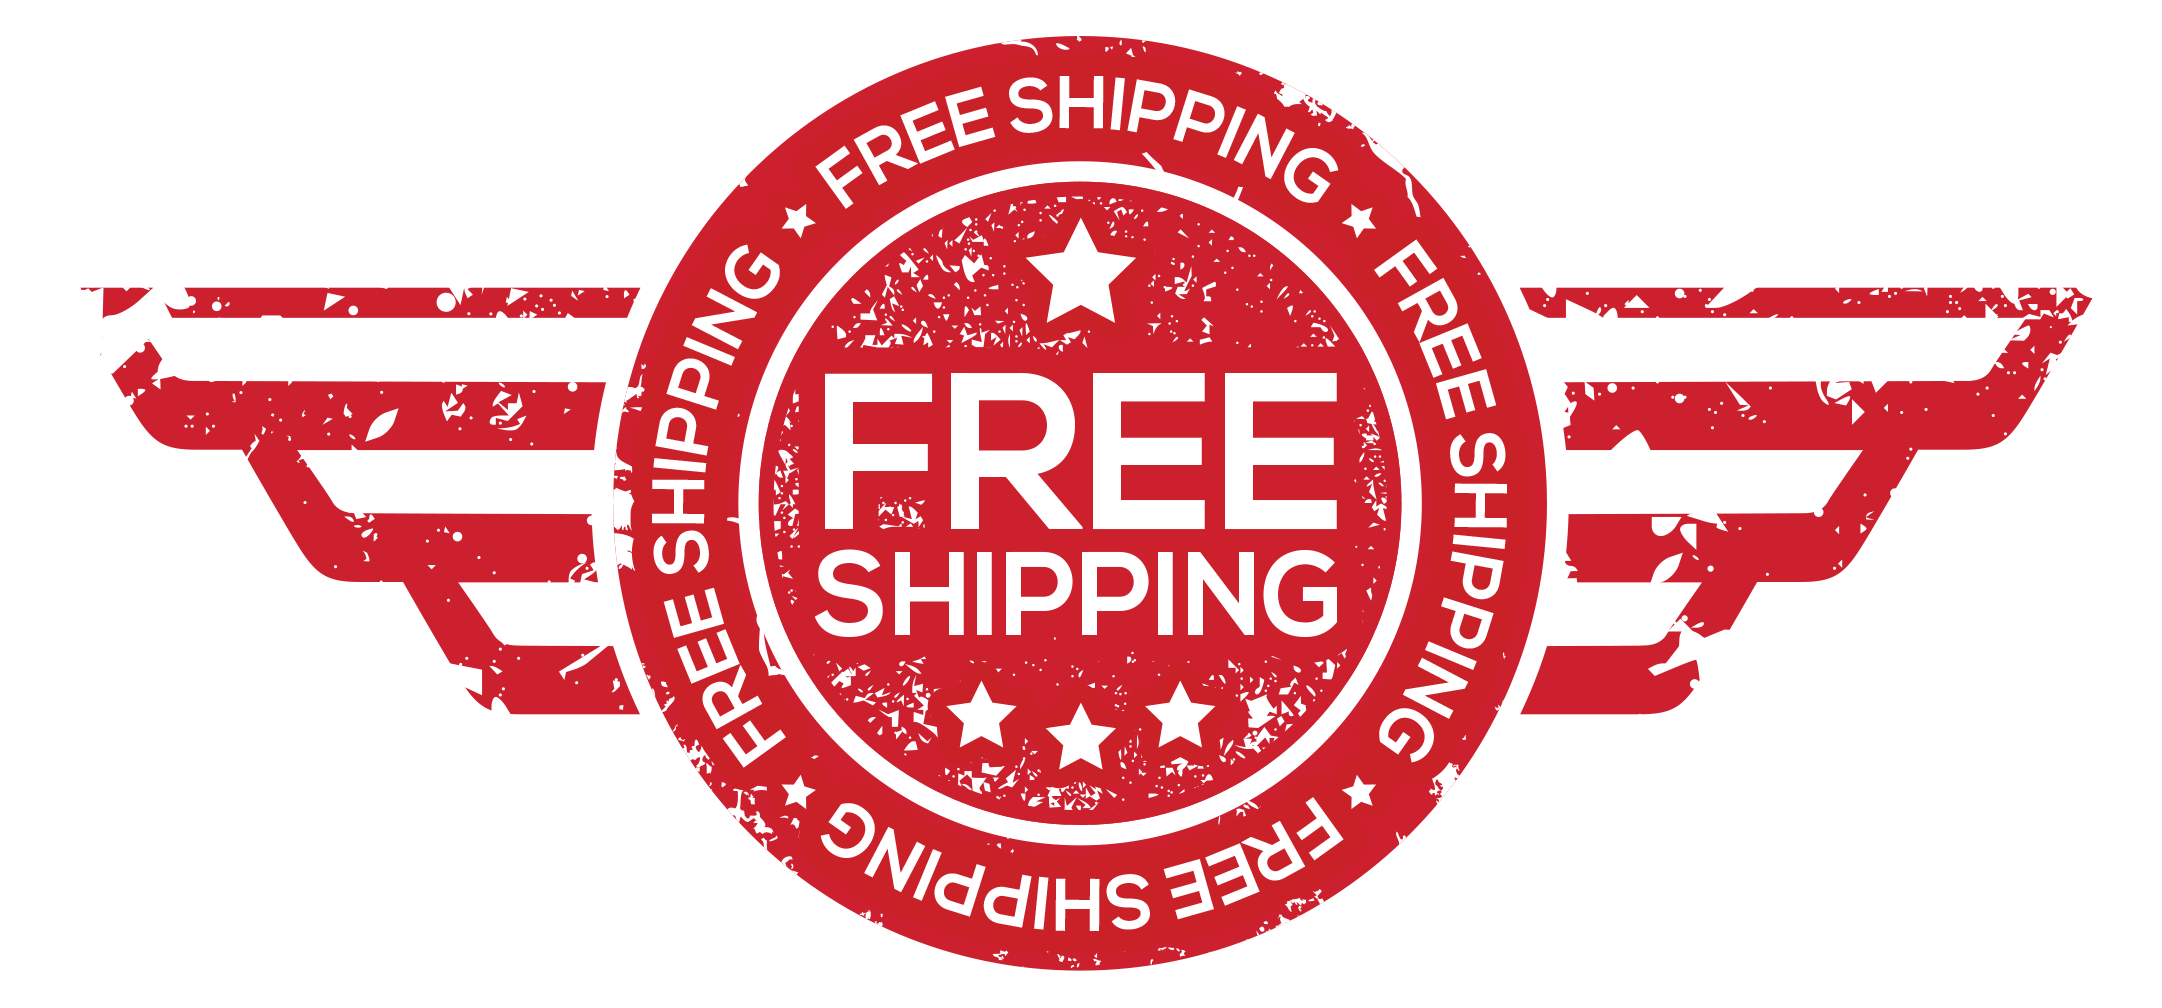 Are over 49 also free shipping on international orders over 99